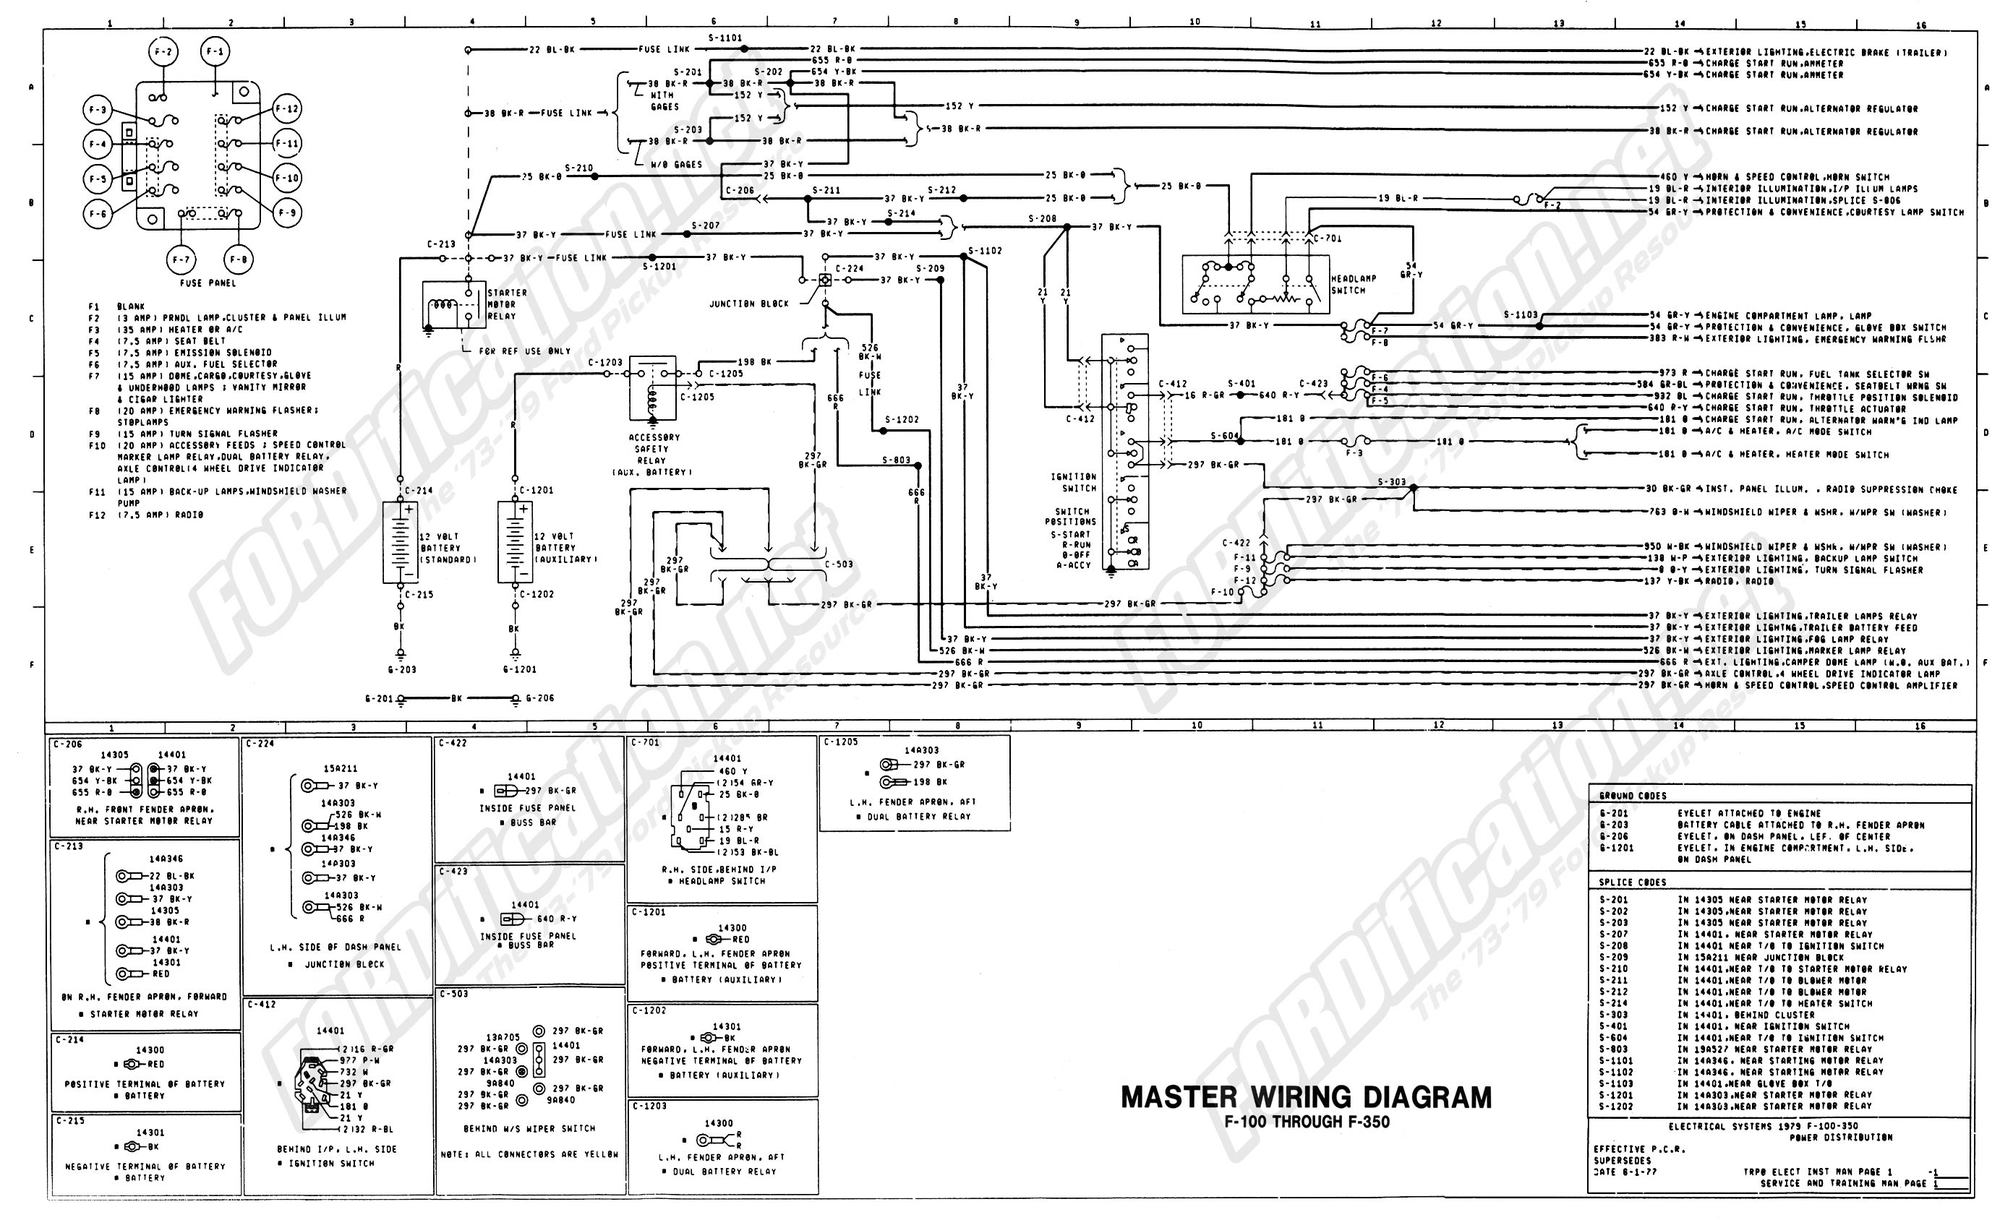 F350 Transmission Diagram